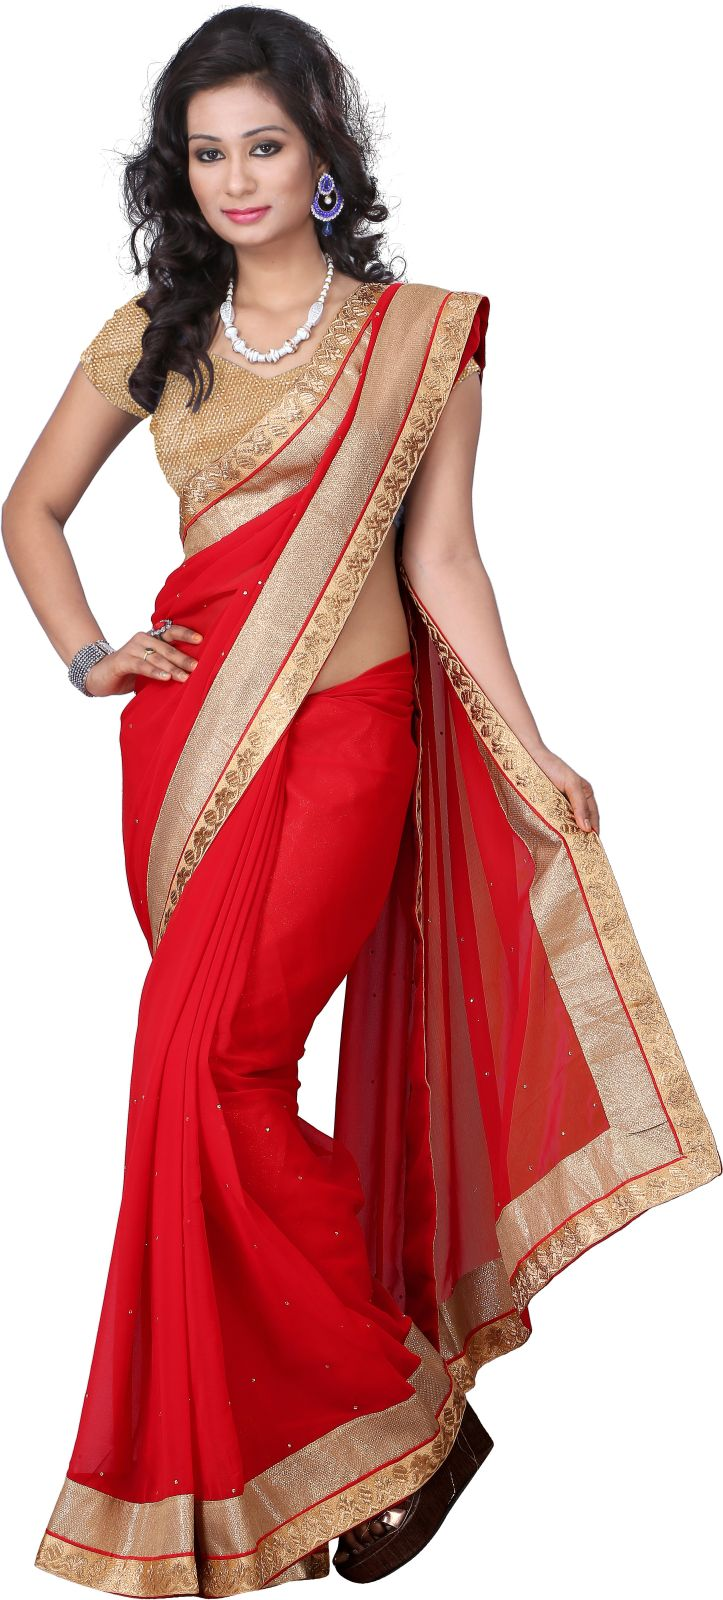 Aai Shree Khodiyar Art Solid Bollywood Chiffon Saree (Red)